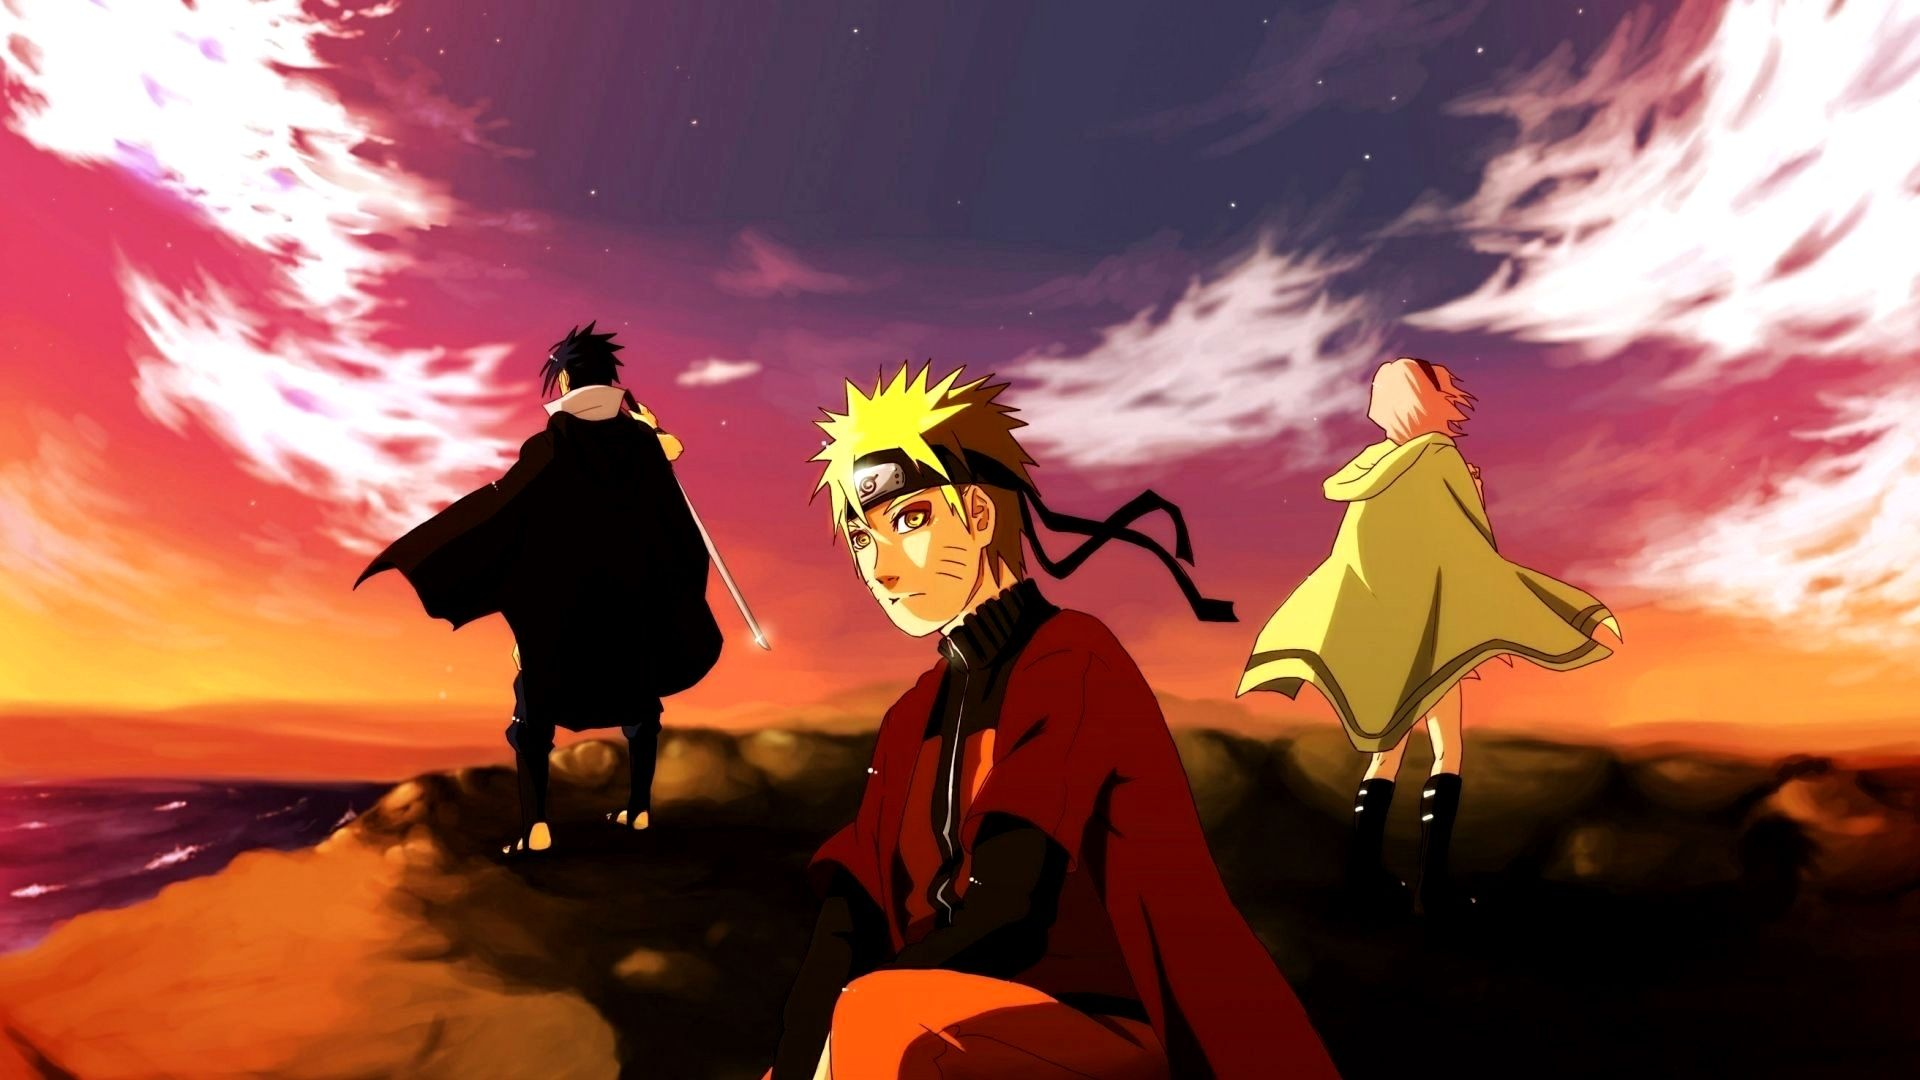 Naruto Wallpaper 4k Pc Download Gallery Naruto Anime Boruto